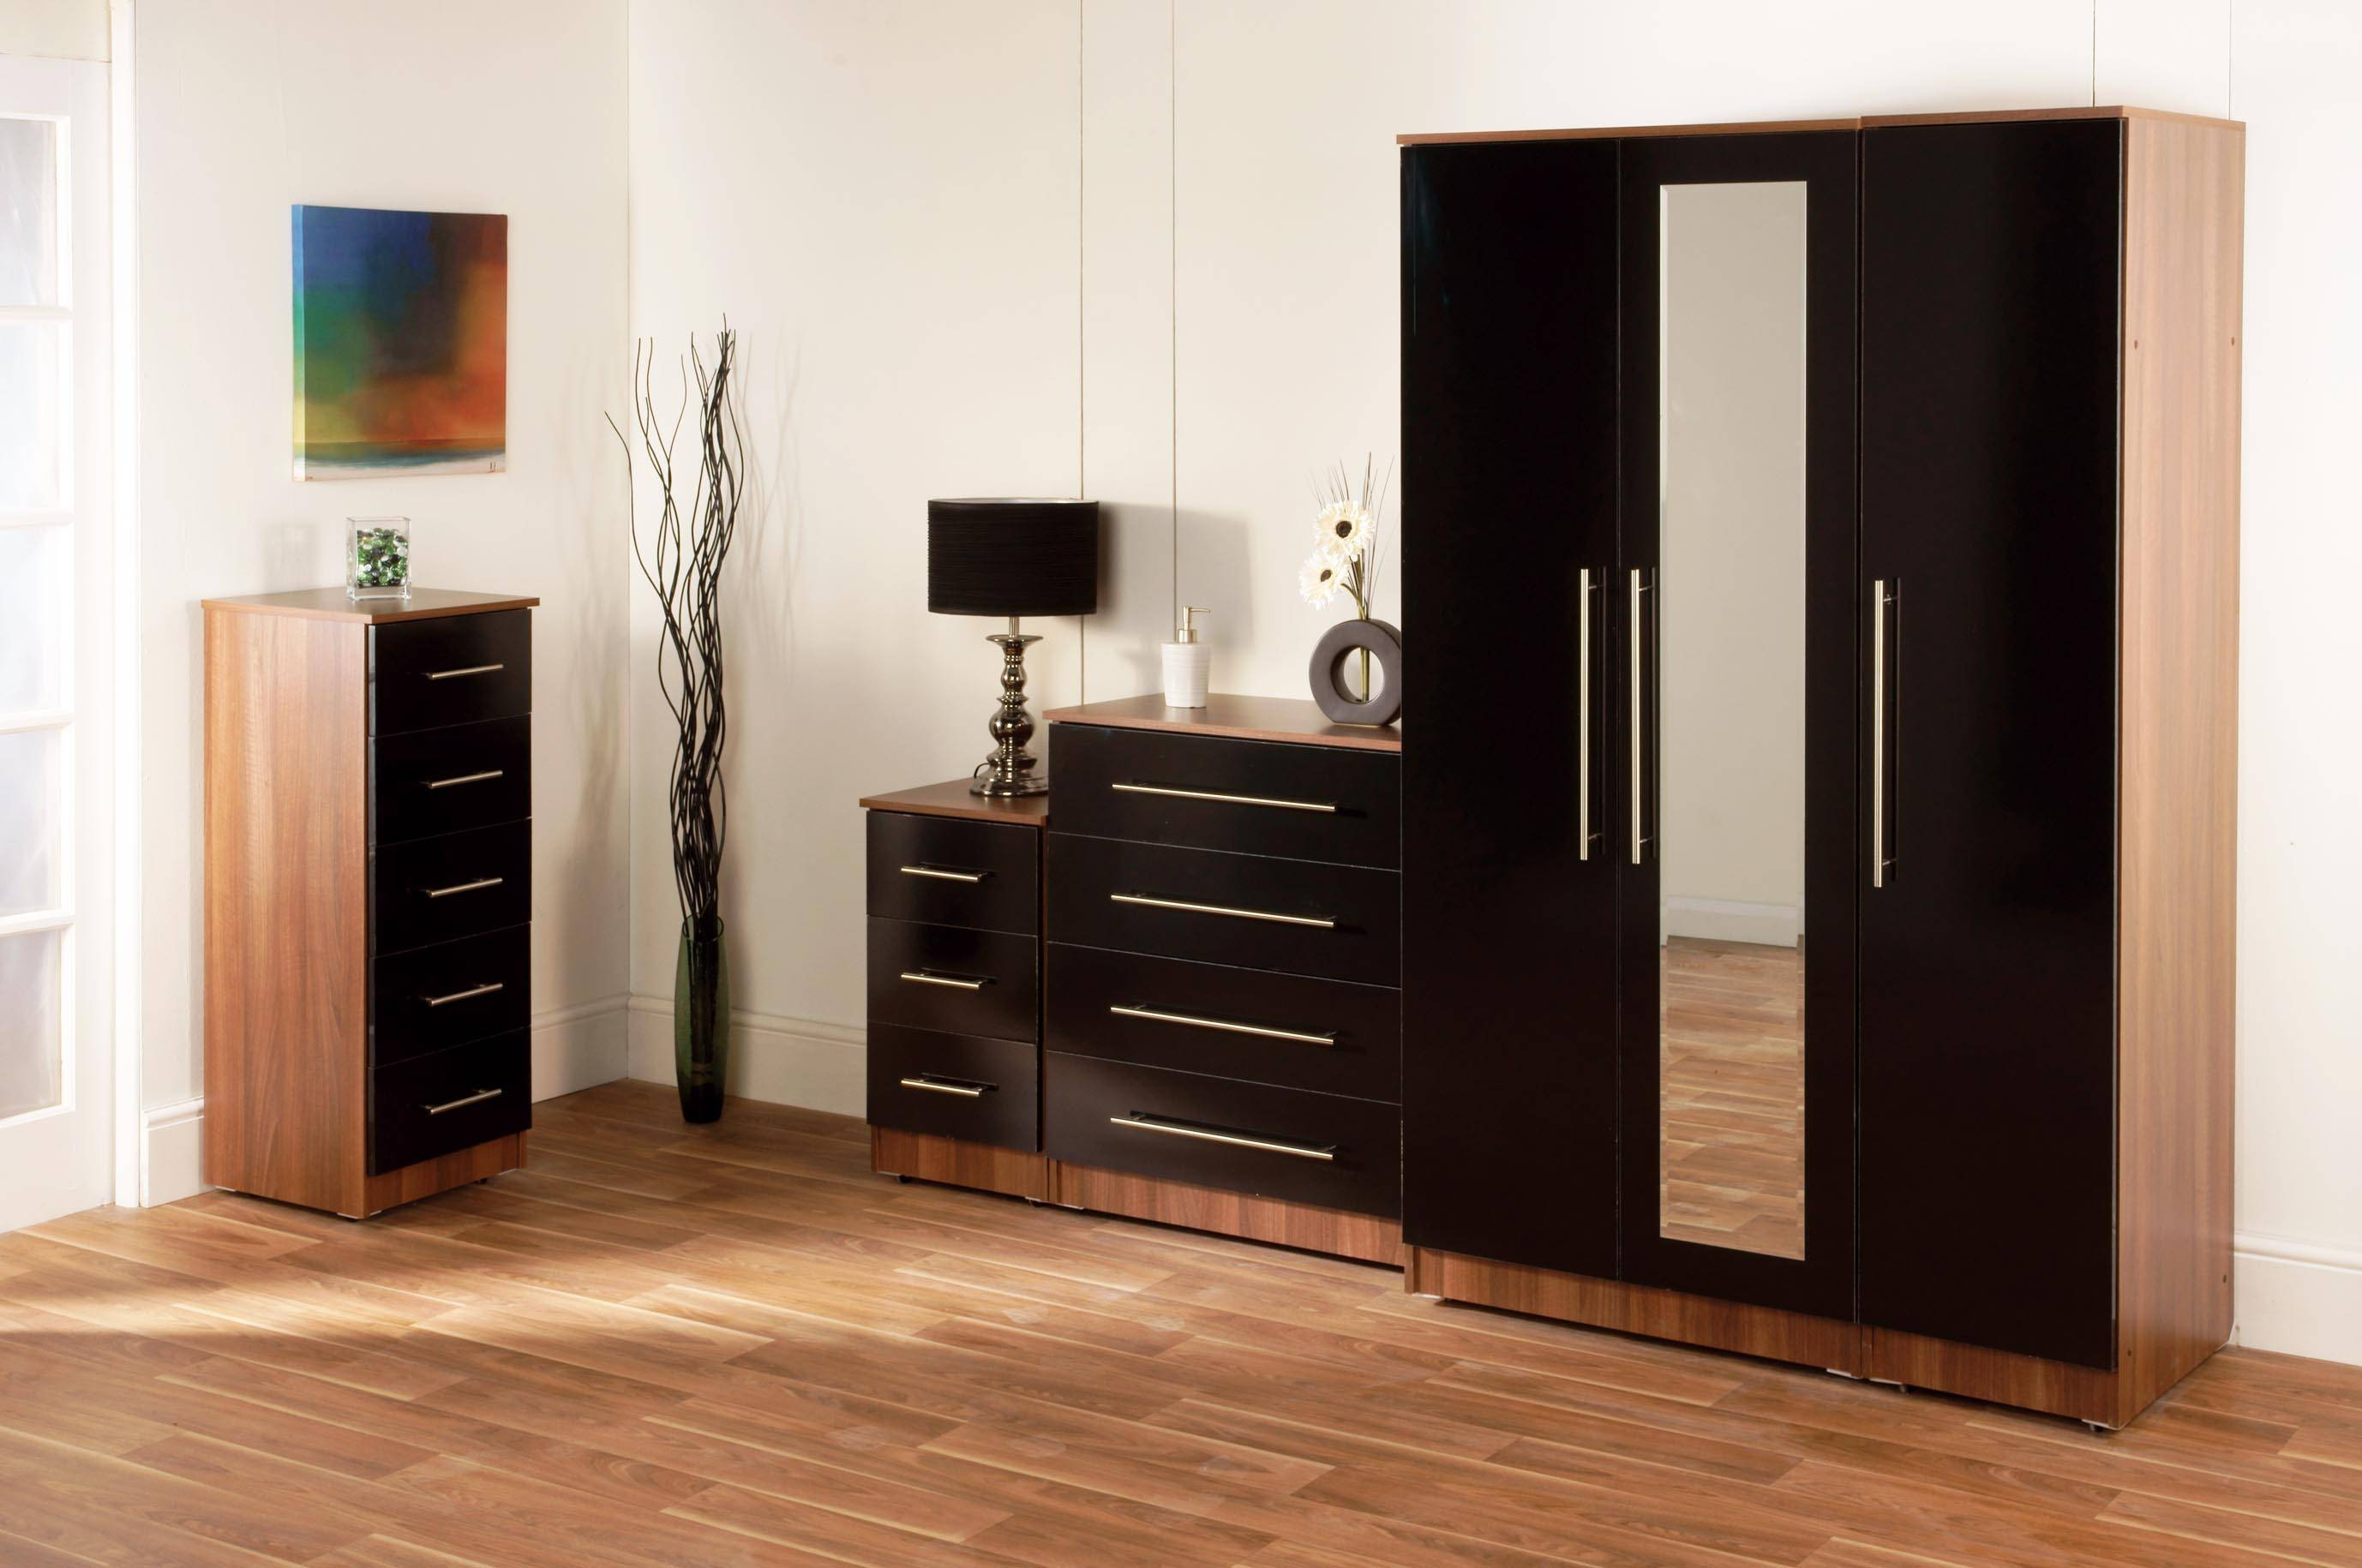 Wardrobe Chest Of Drawers Combination – Chest Of Drawers Within Wardrobes And Chest Of Drawers Combined (View 3 of 15)